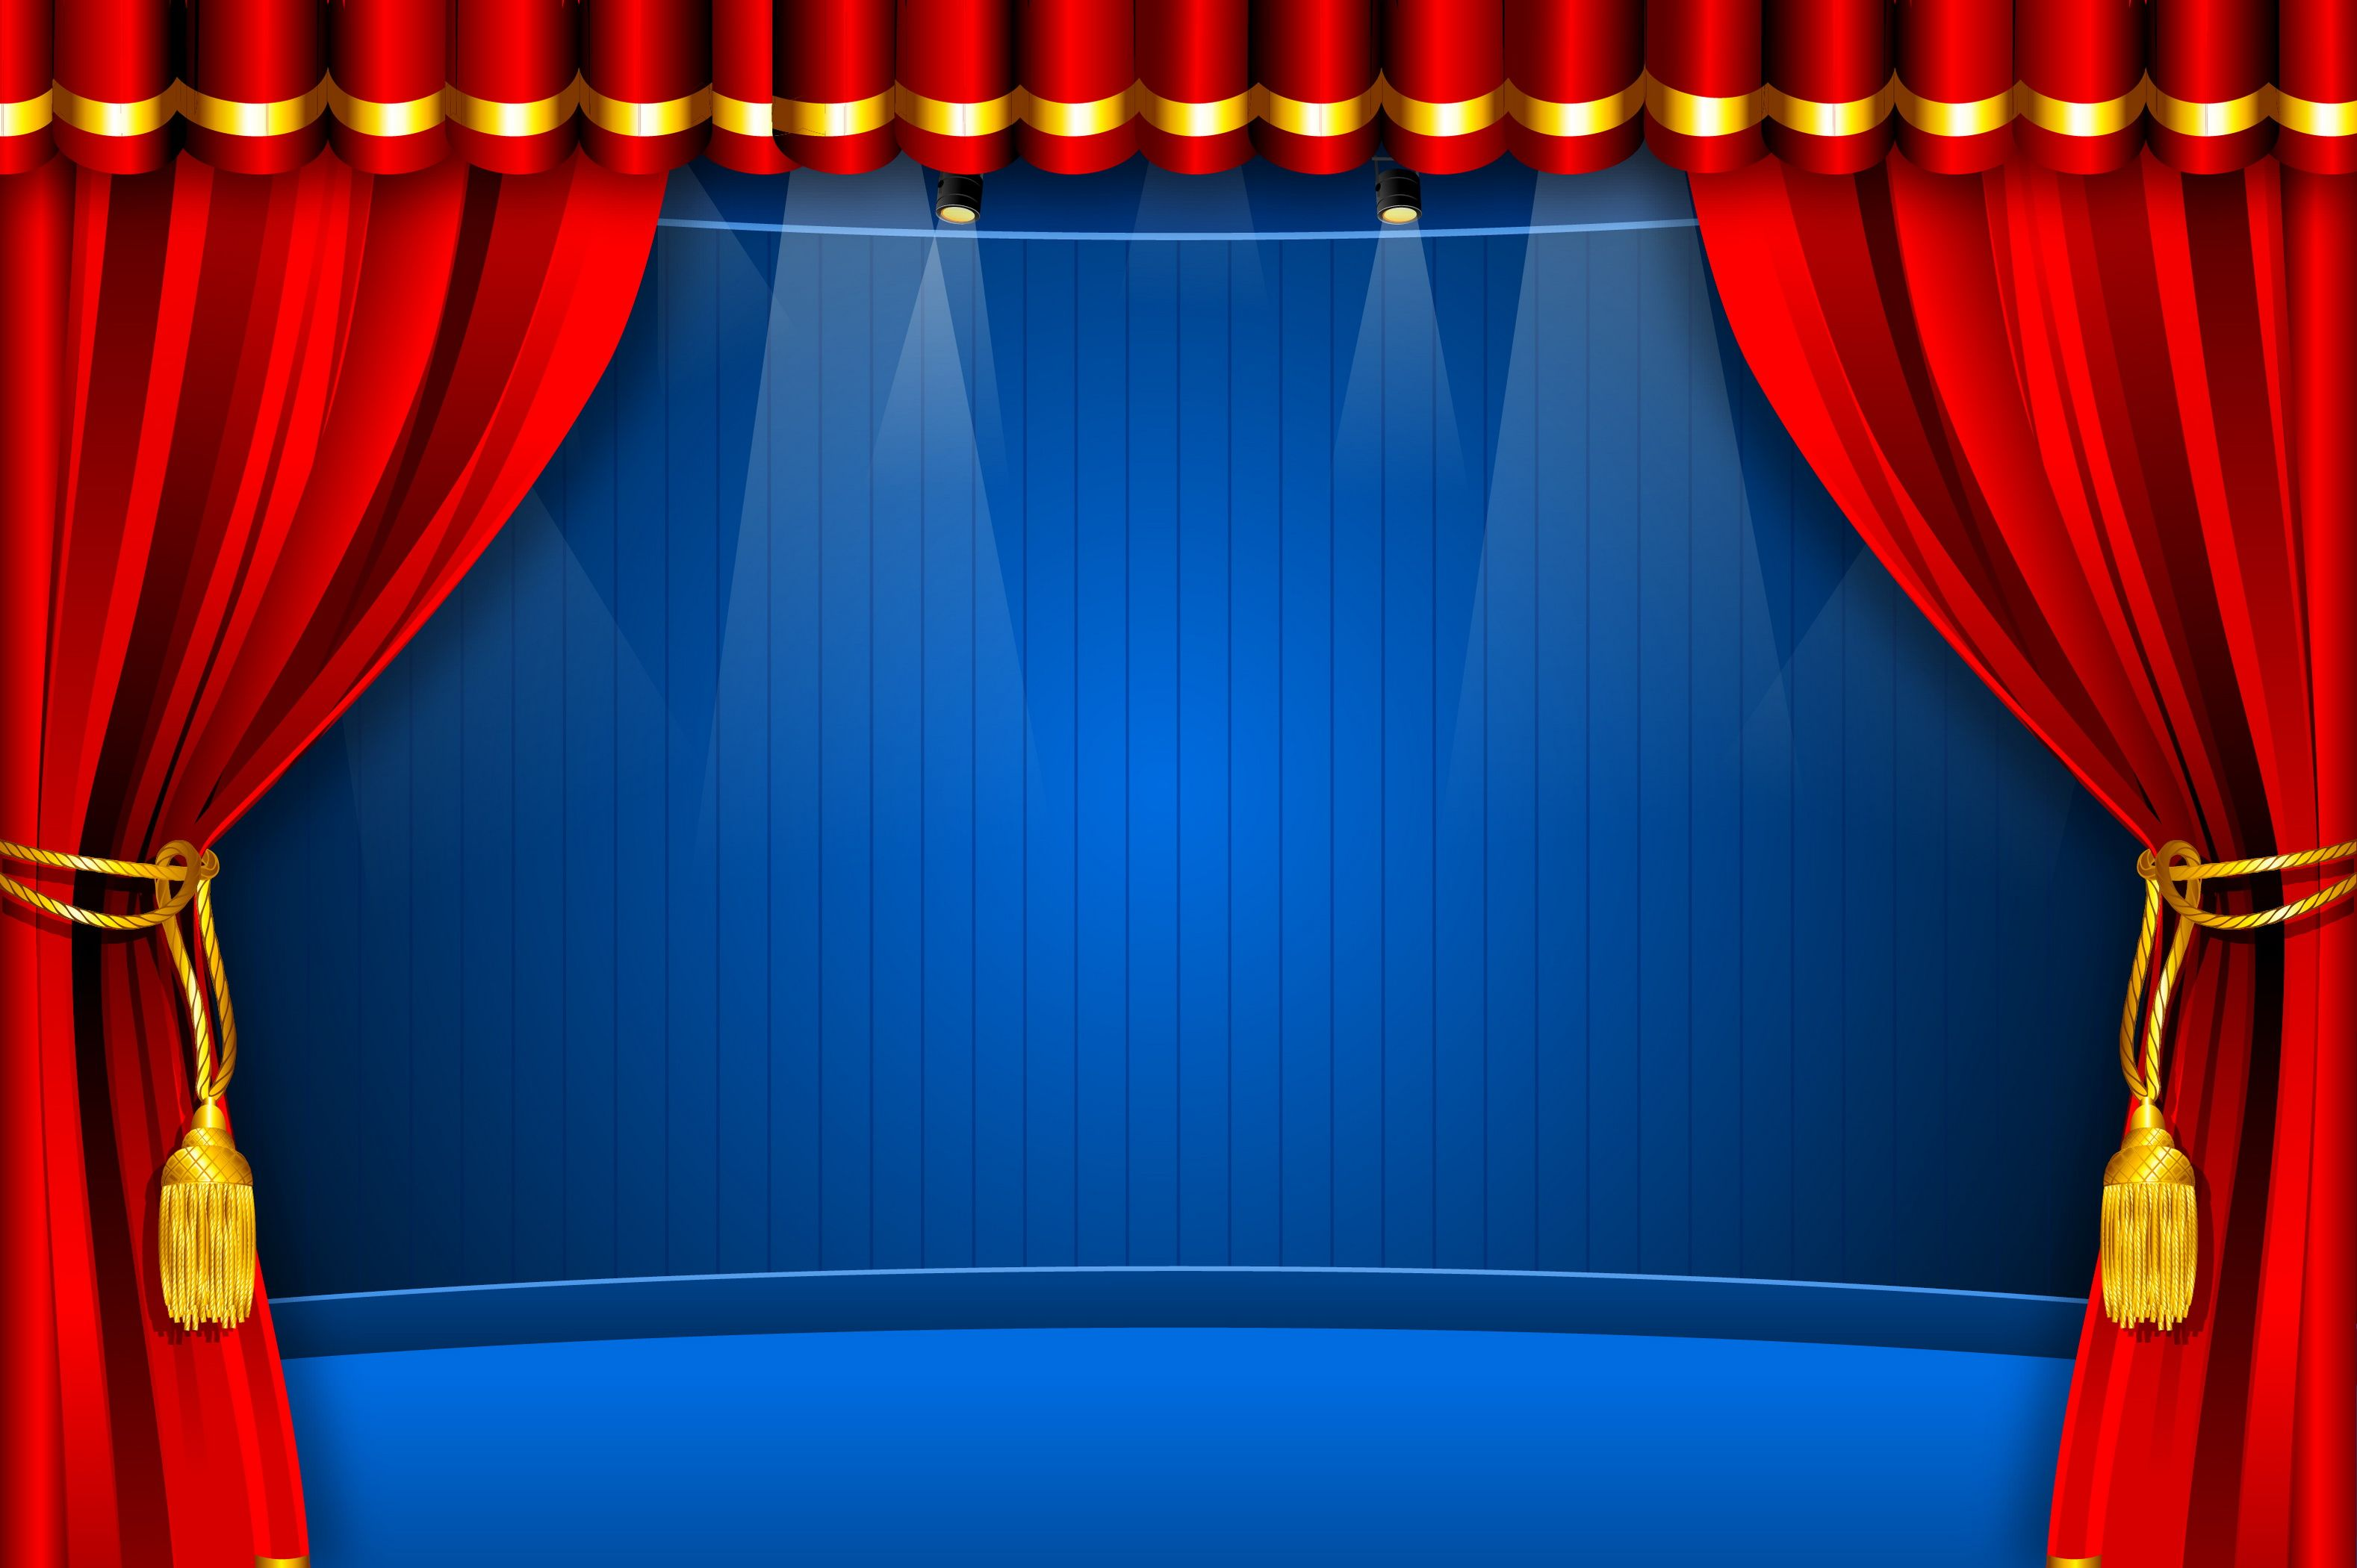 stage curtain stage curtains red